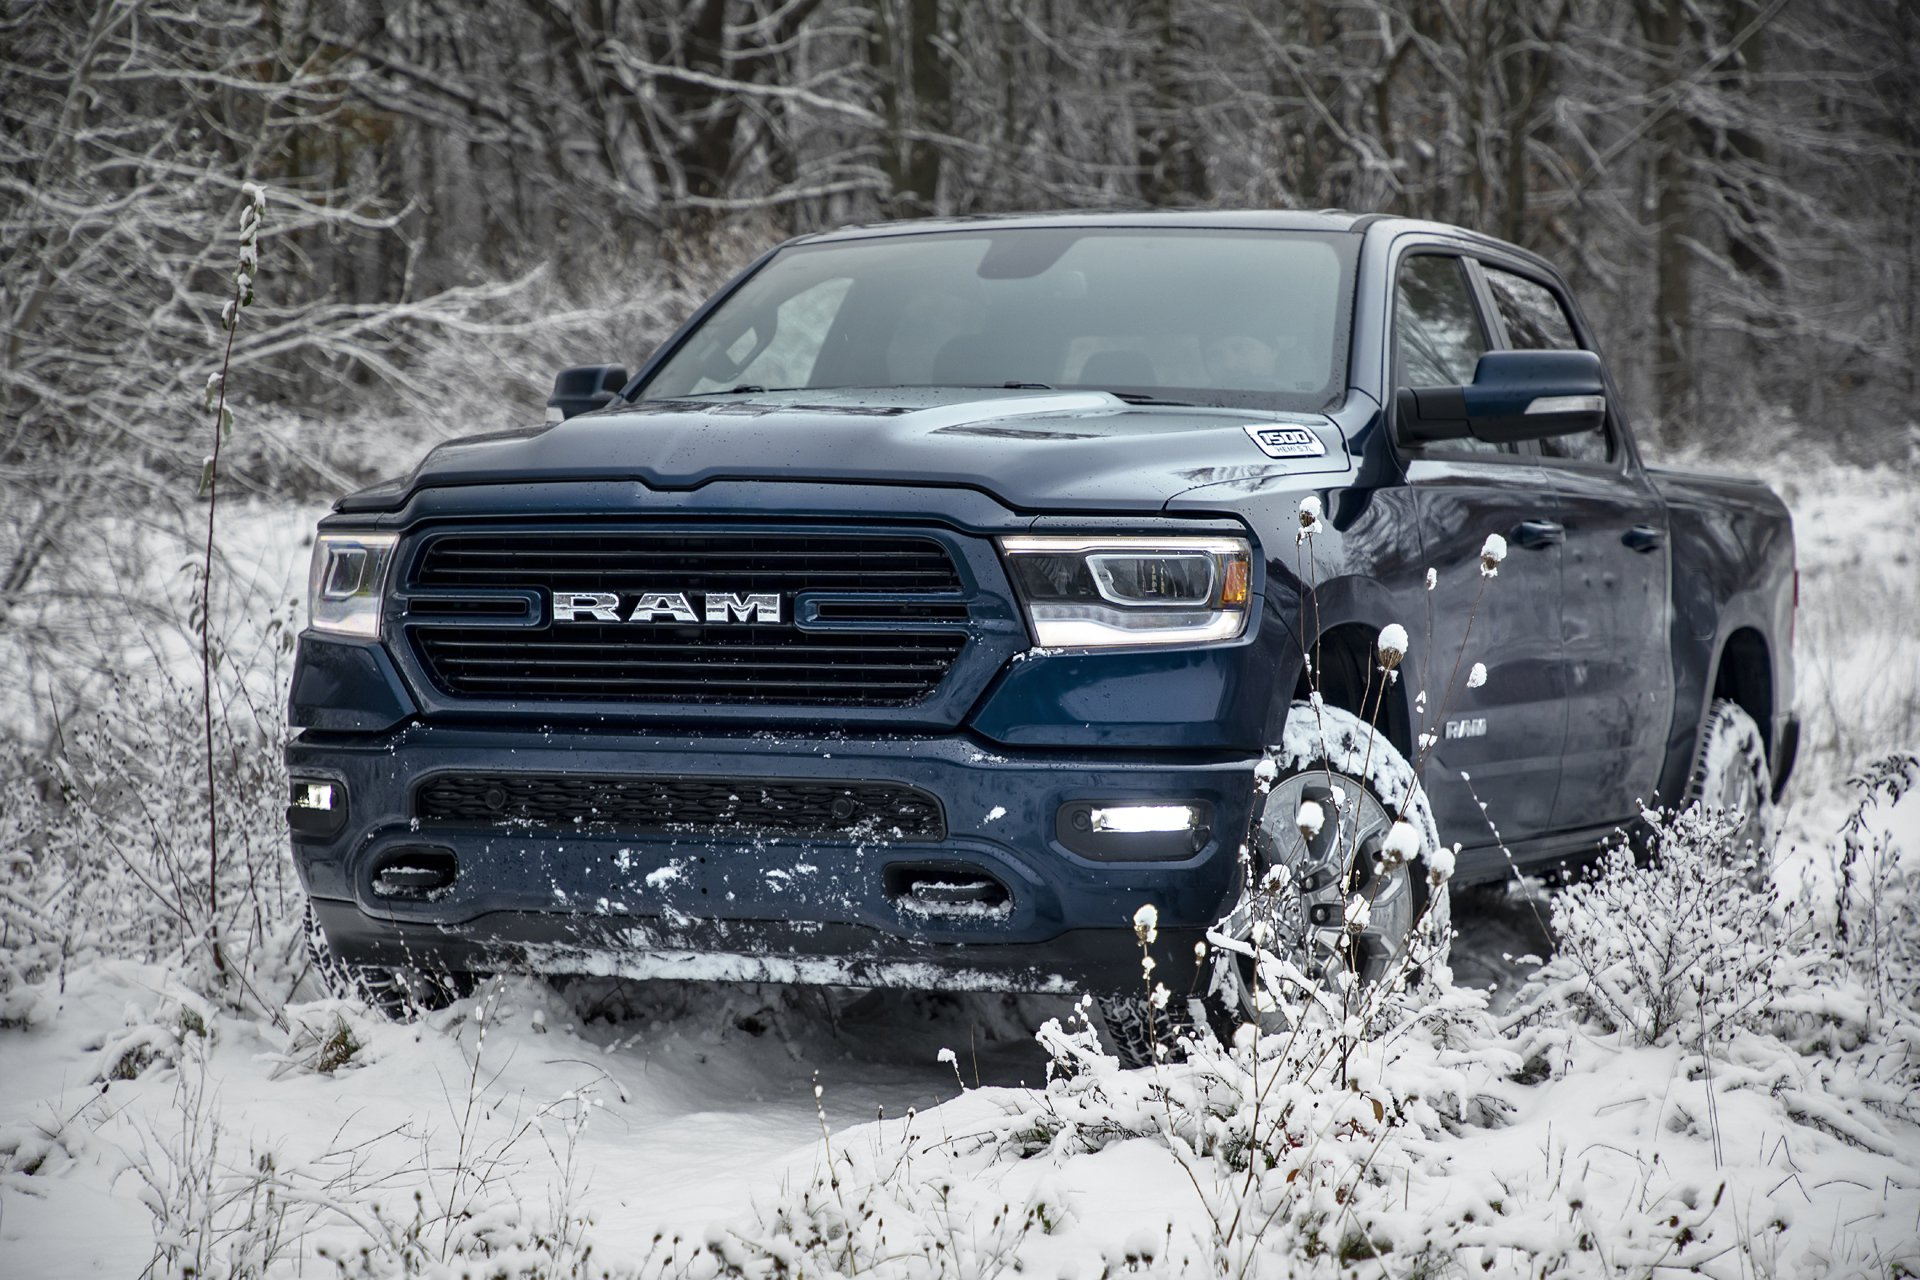 Mopar Lift Kit >> 2019 Ram 1500 North Edition Features Factory Lift Kit - autoevolution